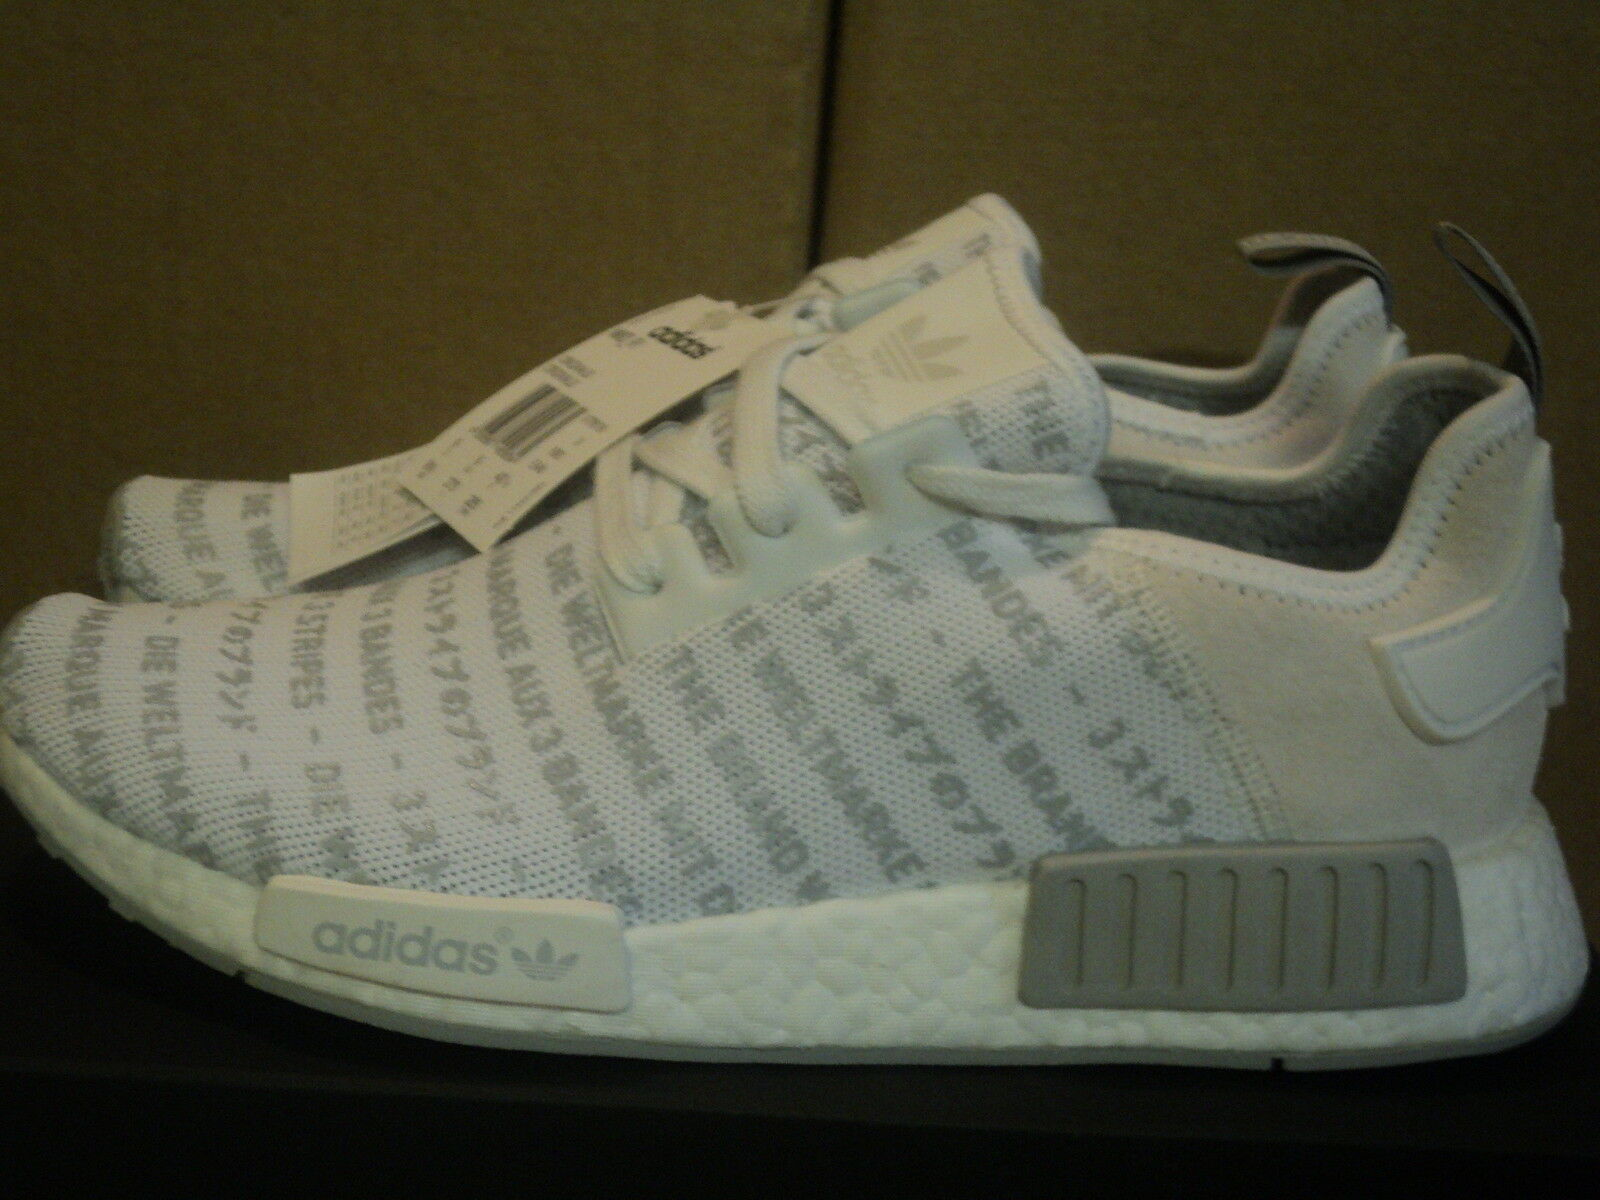 ADIDAS NMD R1 3 STRIPES WHITE SOLID GREY SIZE & 9 = US 8.5 & 9.5  --NEW--